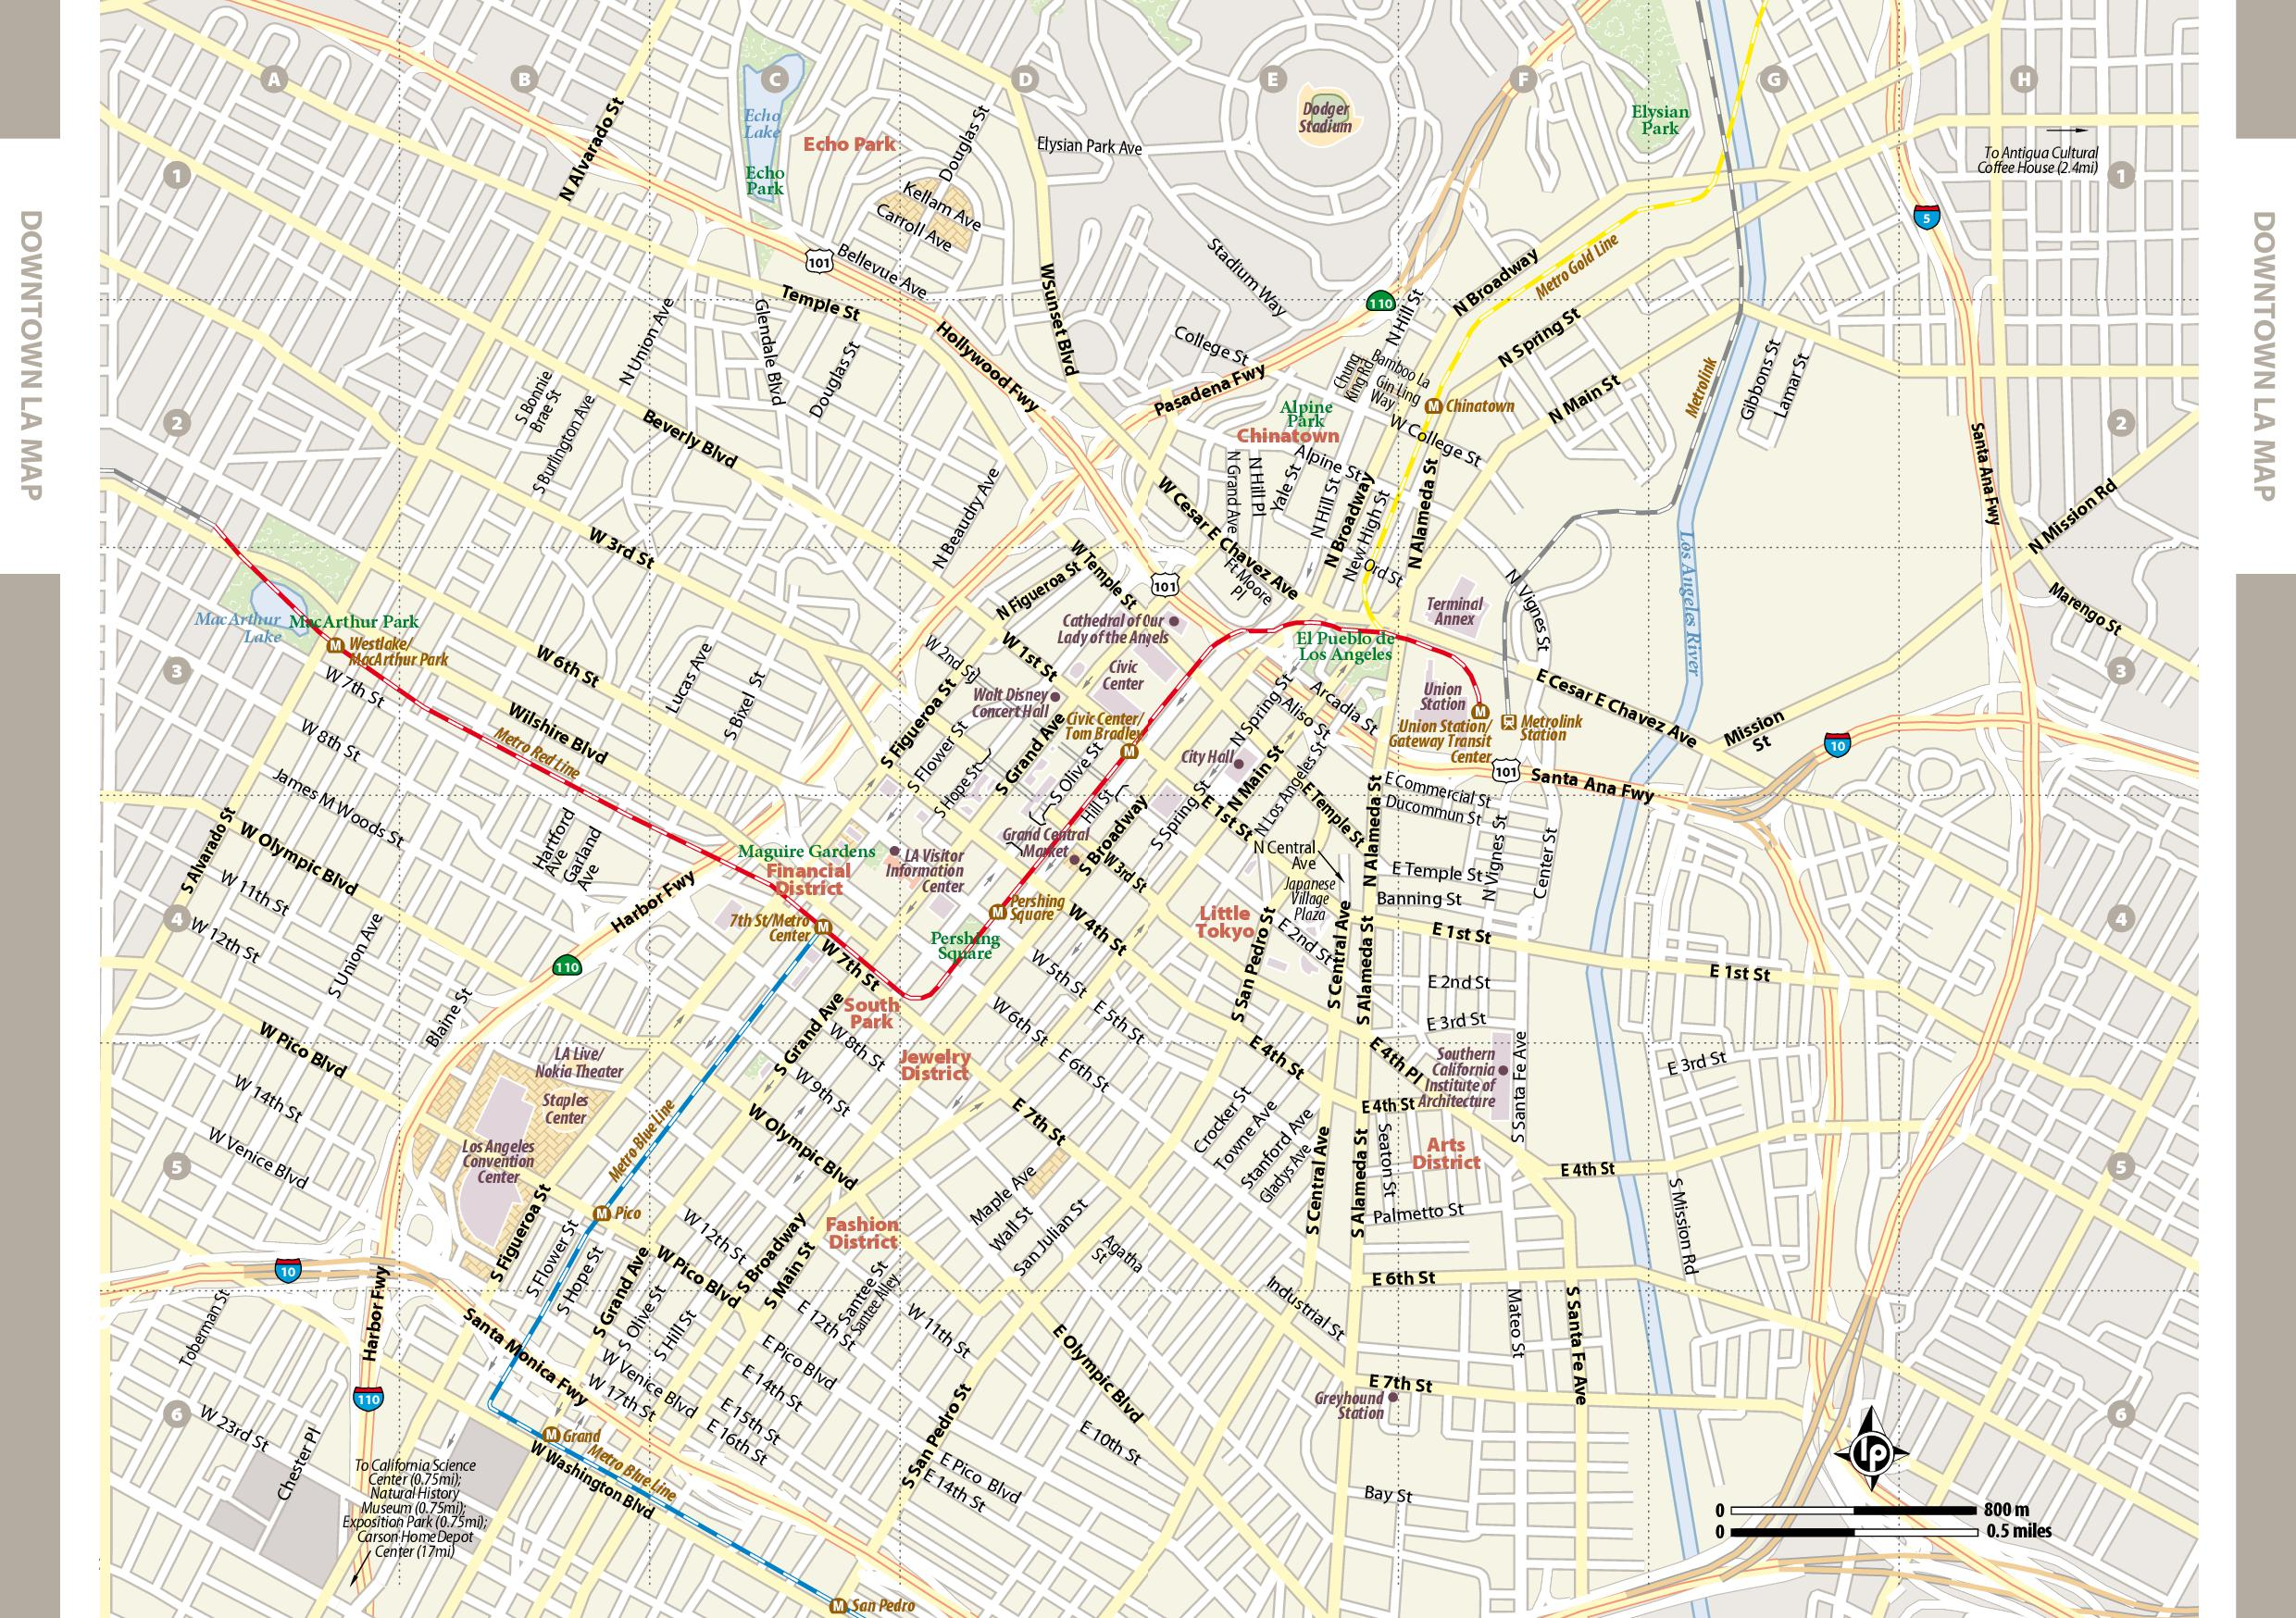 Los Angeles Subway Map Pdf.Large Los Angeles Maps For Free Download And Print High Resolution